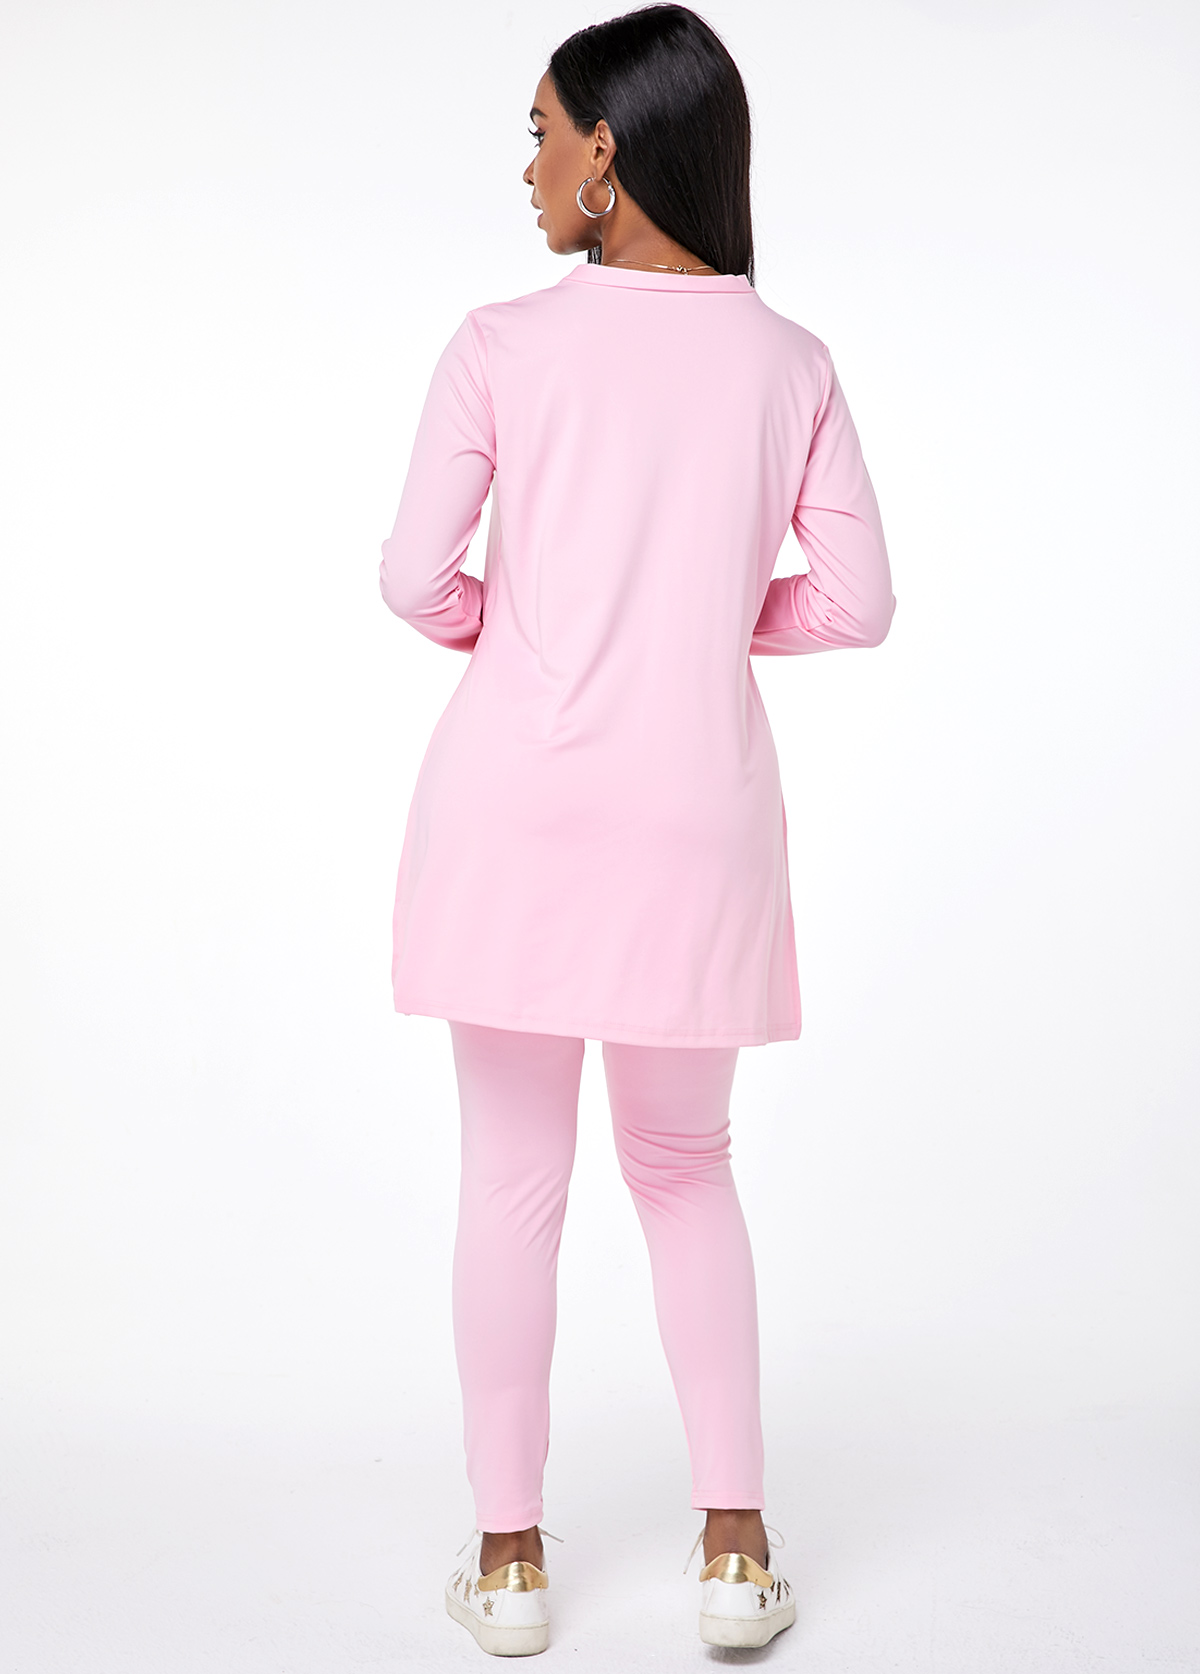 V Neck Long Sleeve Top and Pants